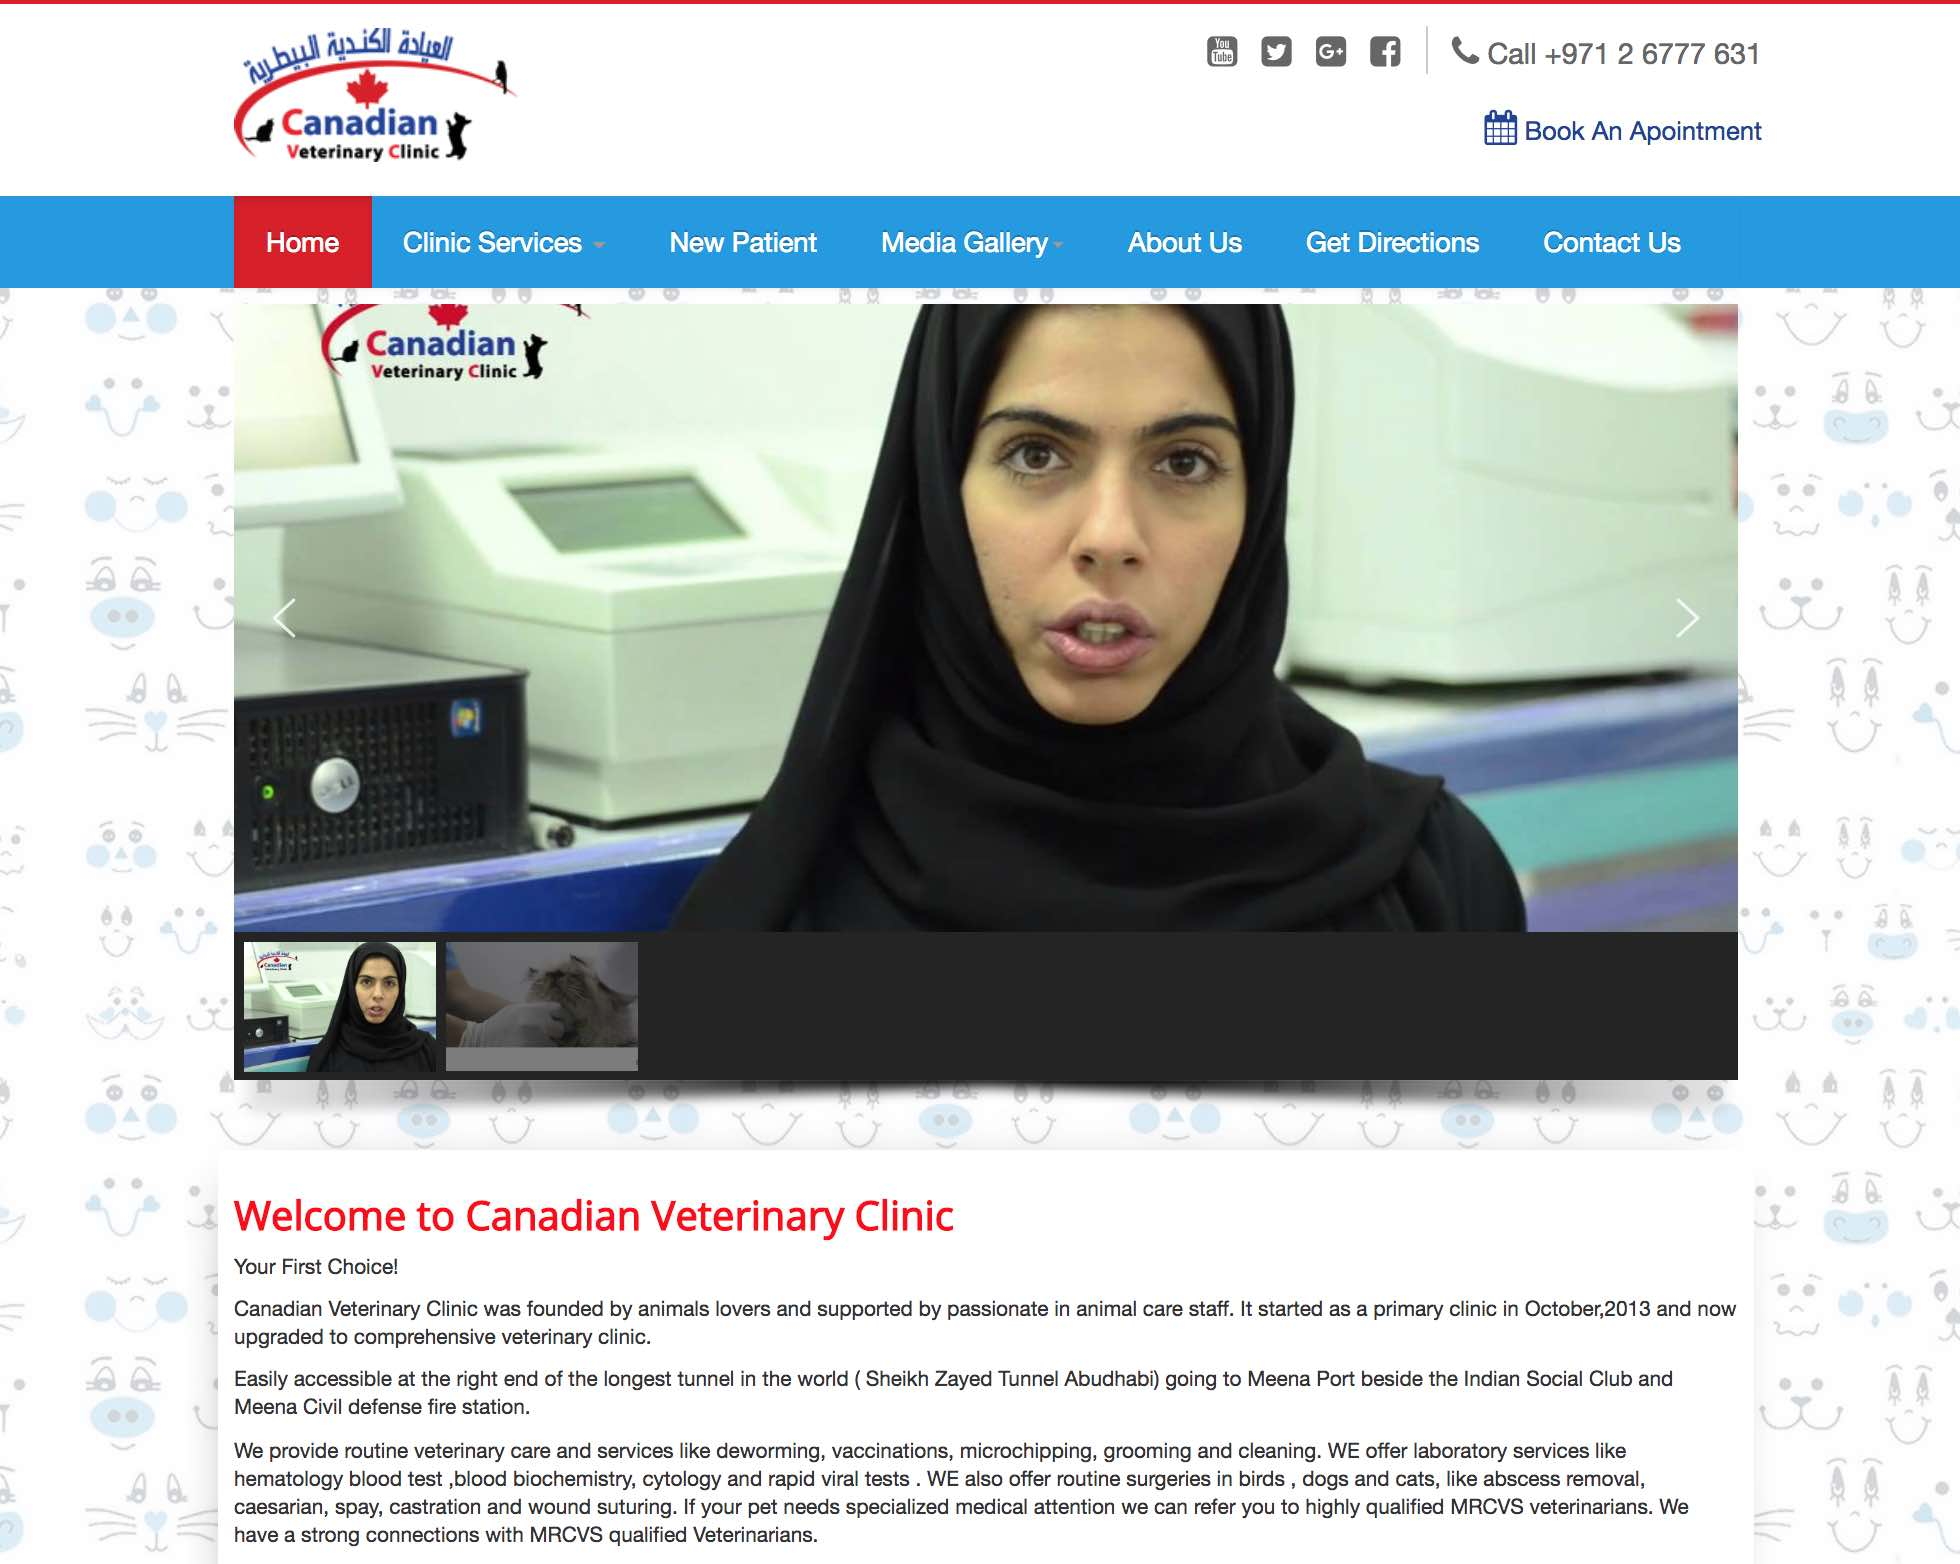 Canadian Veterinary Clinic Abu Dhabi UAE